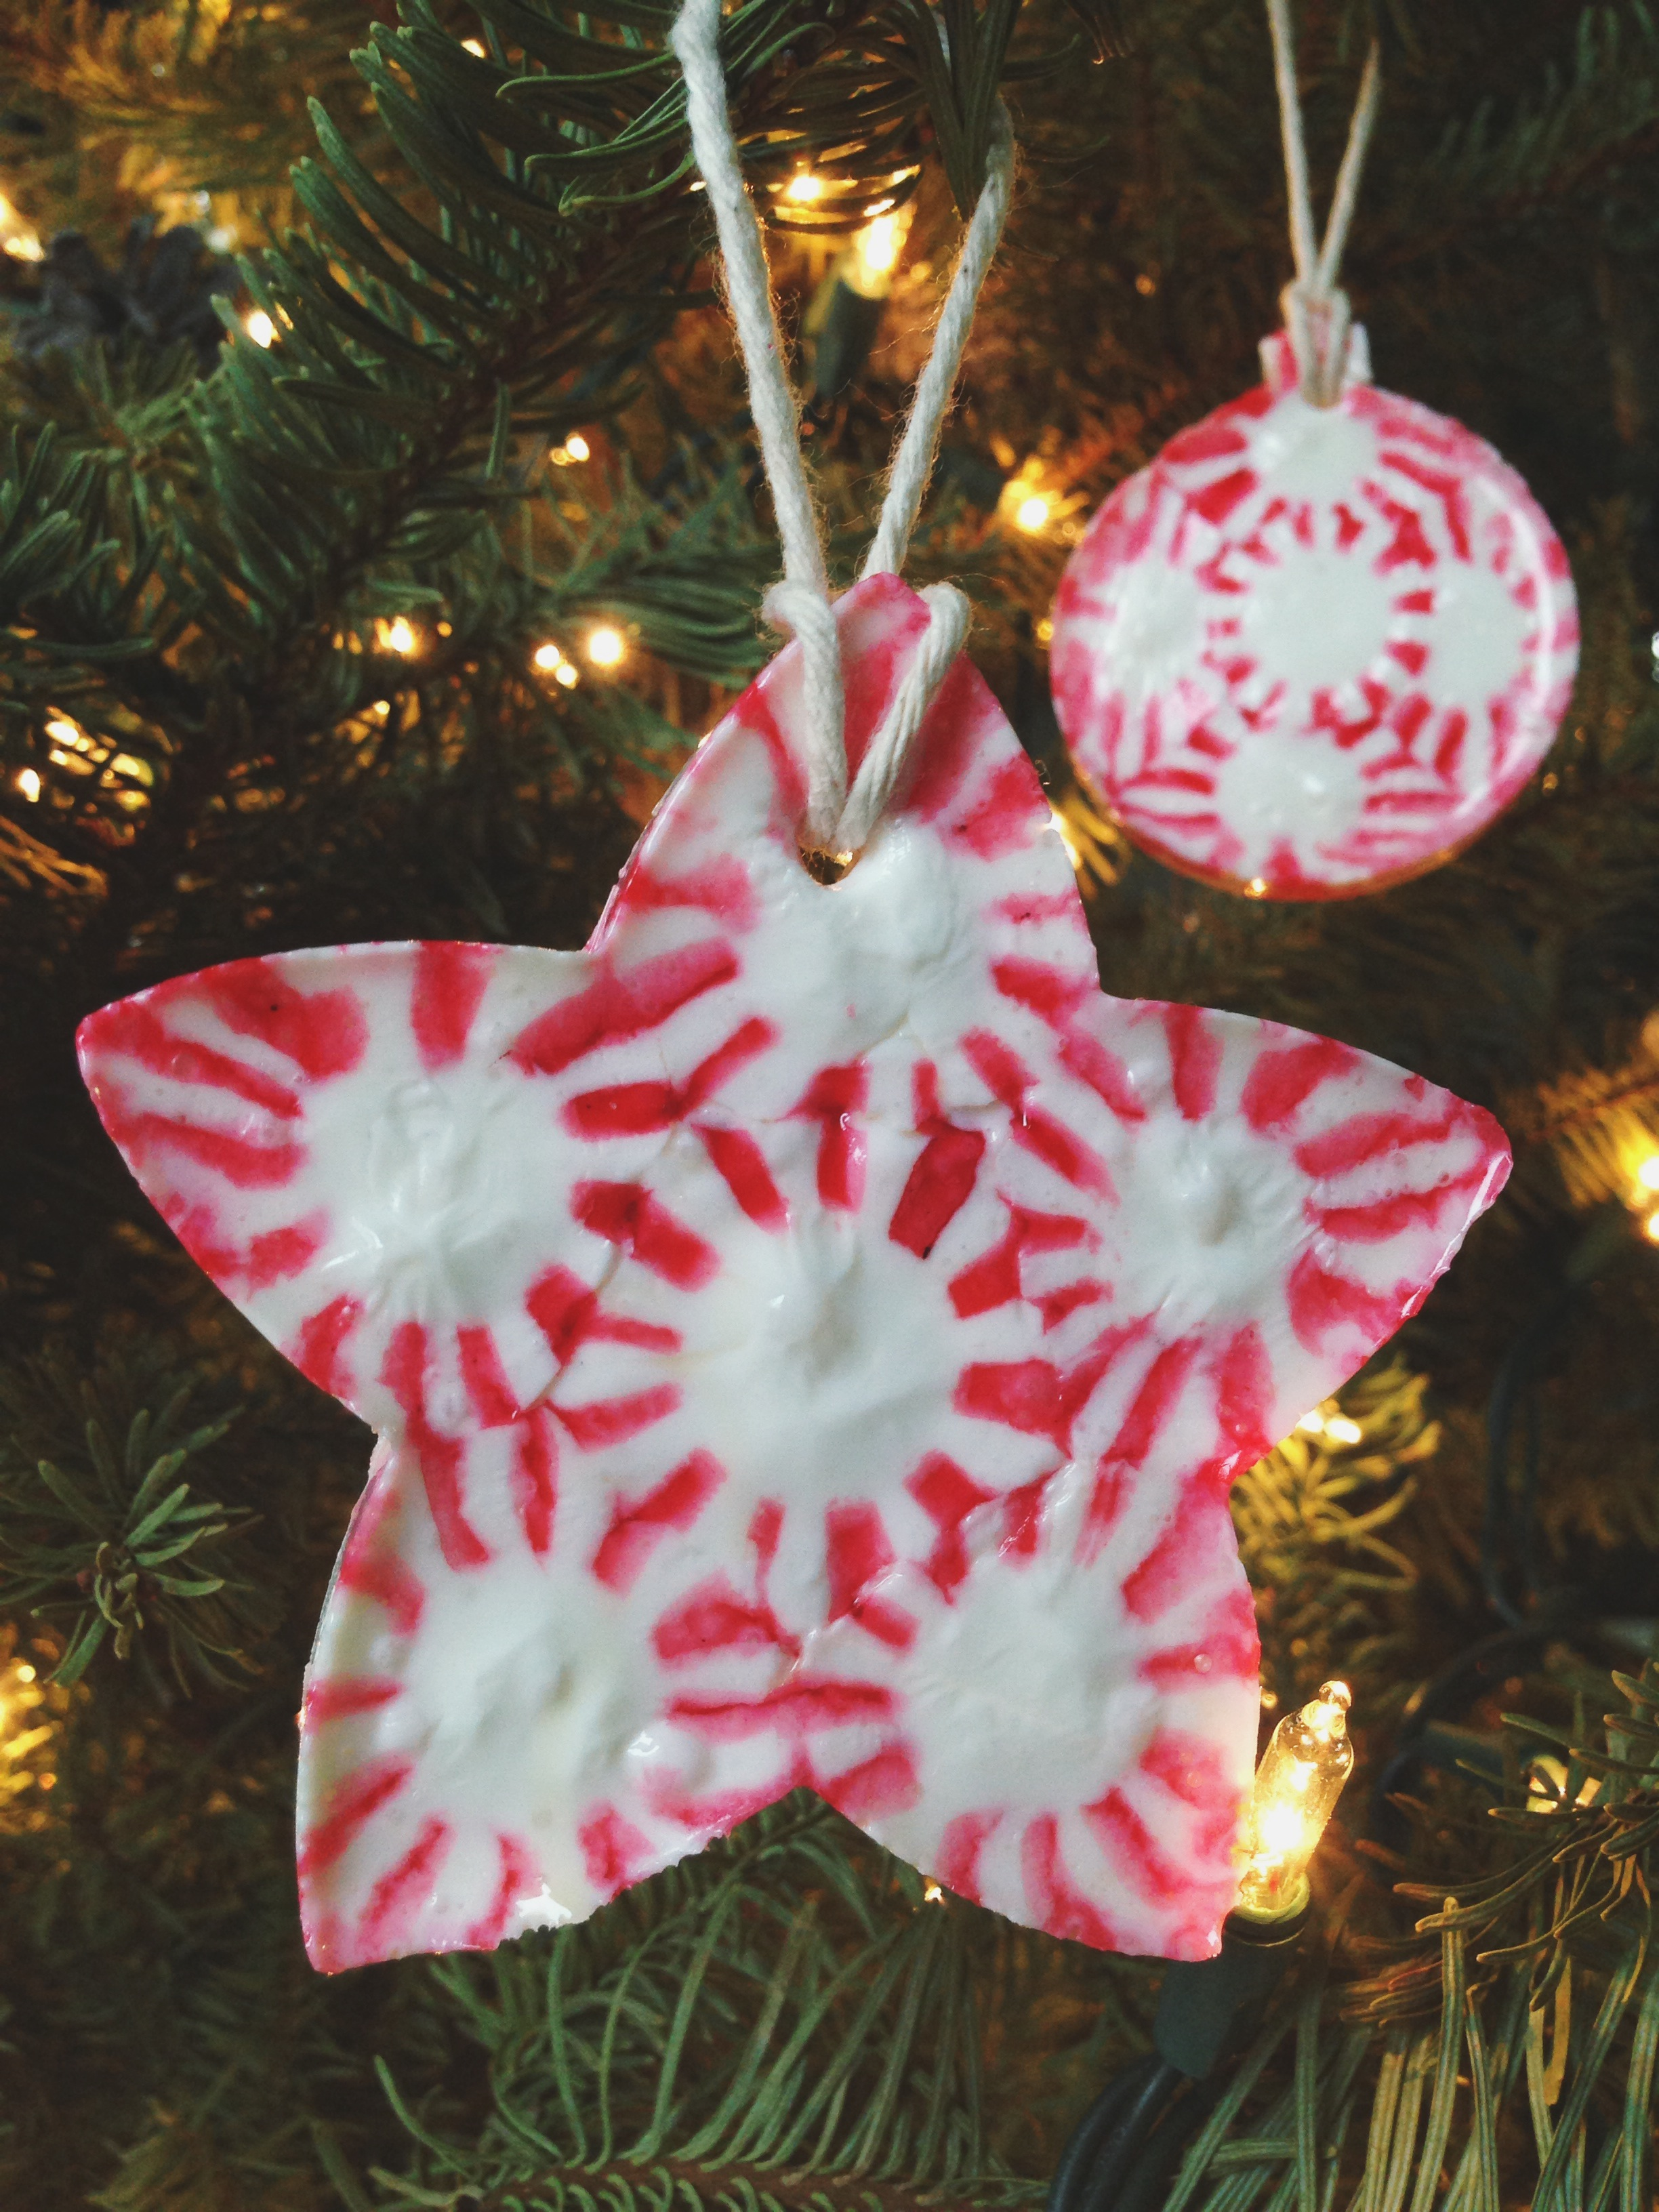 peppermint candy ornament 25 beautiful handmade ornaments - Beautiful Christmas Ornaments